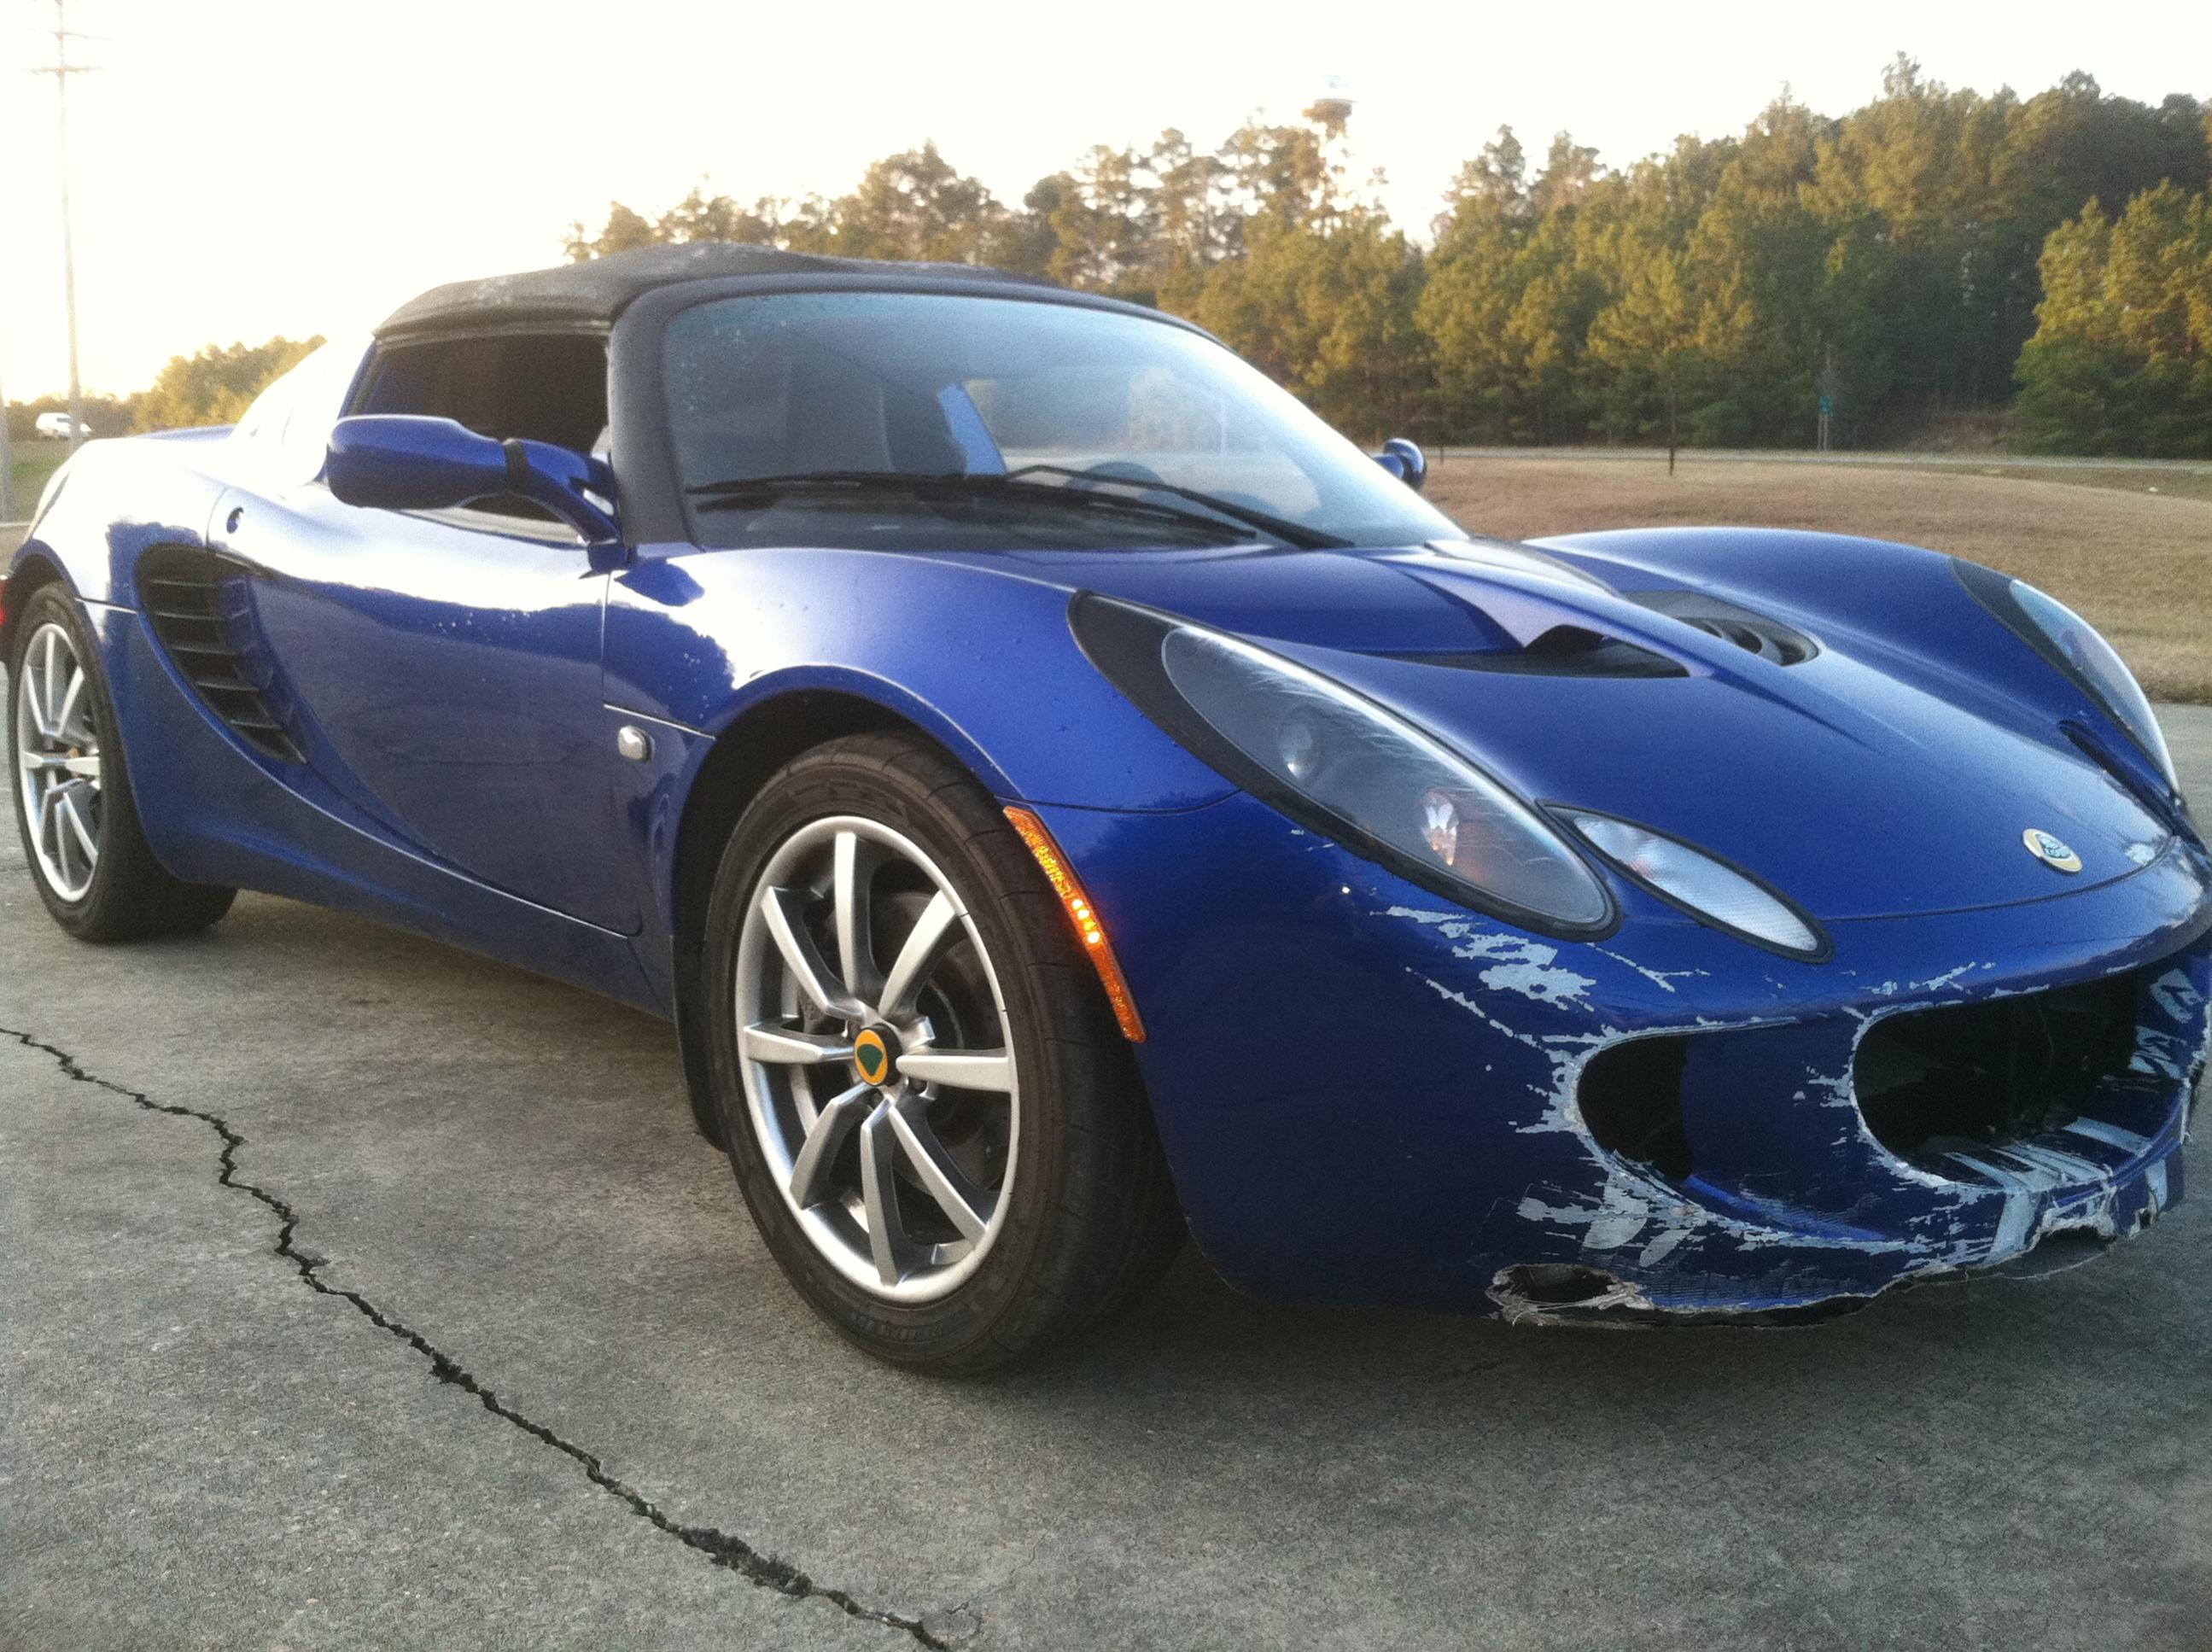 2005 lotus elise for sale damaged repairable salvage lotustalk 2005 lotus elise for sale damaged repairable salvage lotustalk the lotus cars community vanachro Choice Image